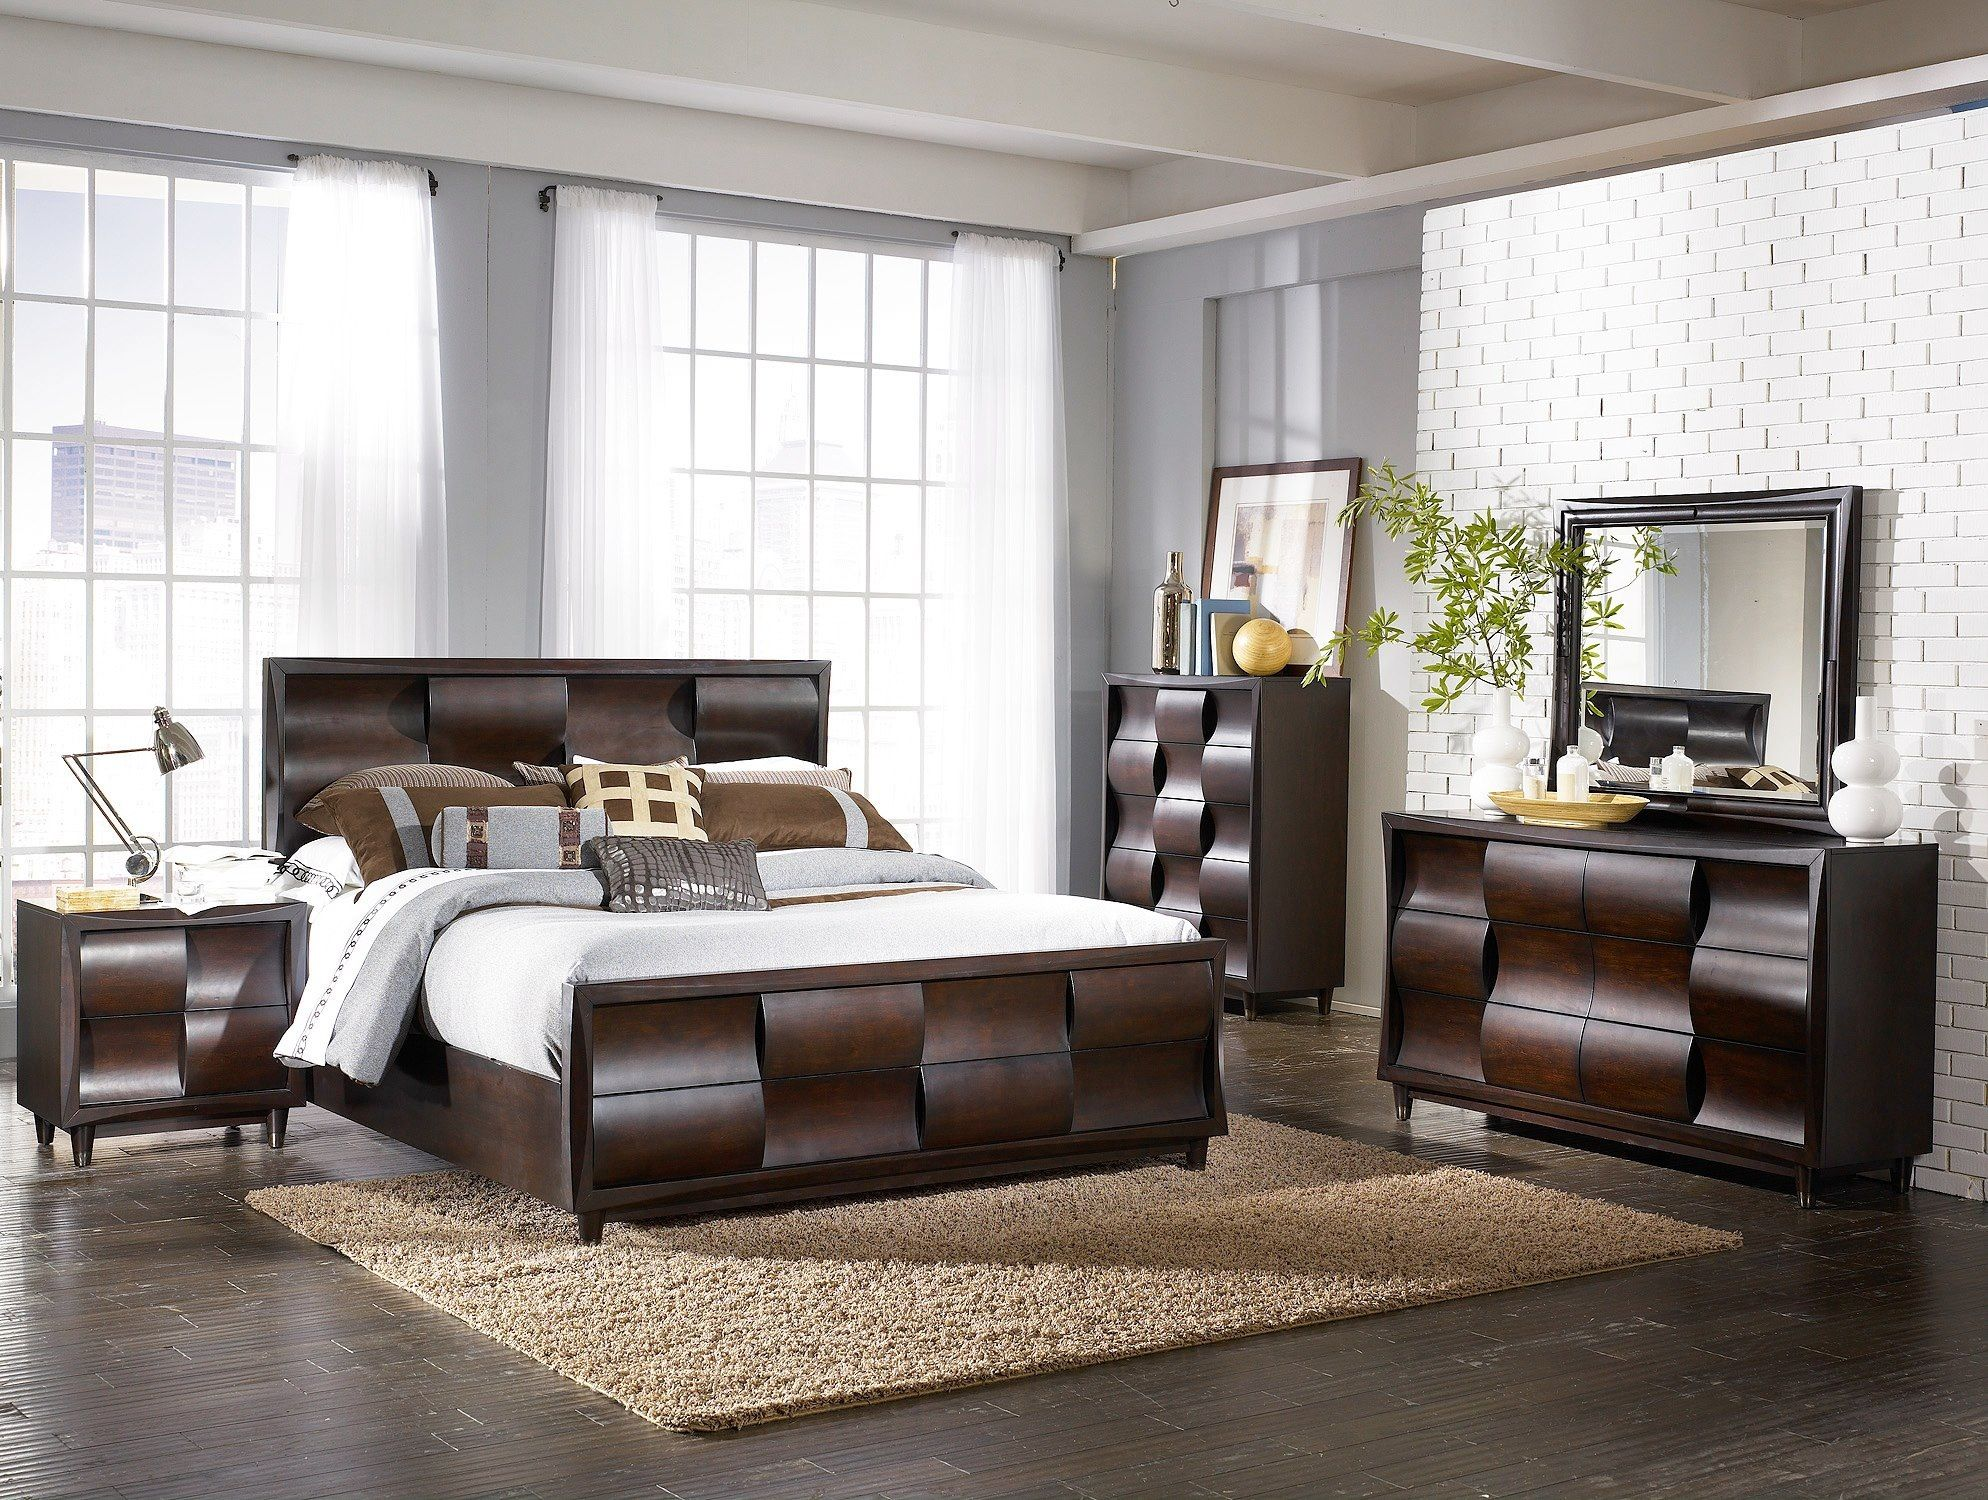 Juego De Cuarto Master Muebleria Berrios 1 795 5 Piezas 2 395 8 Piezas Con Matres Simmons Queen Master Bedroom Set Bedroom Set Bedroom Sets